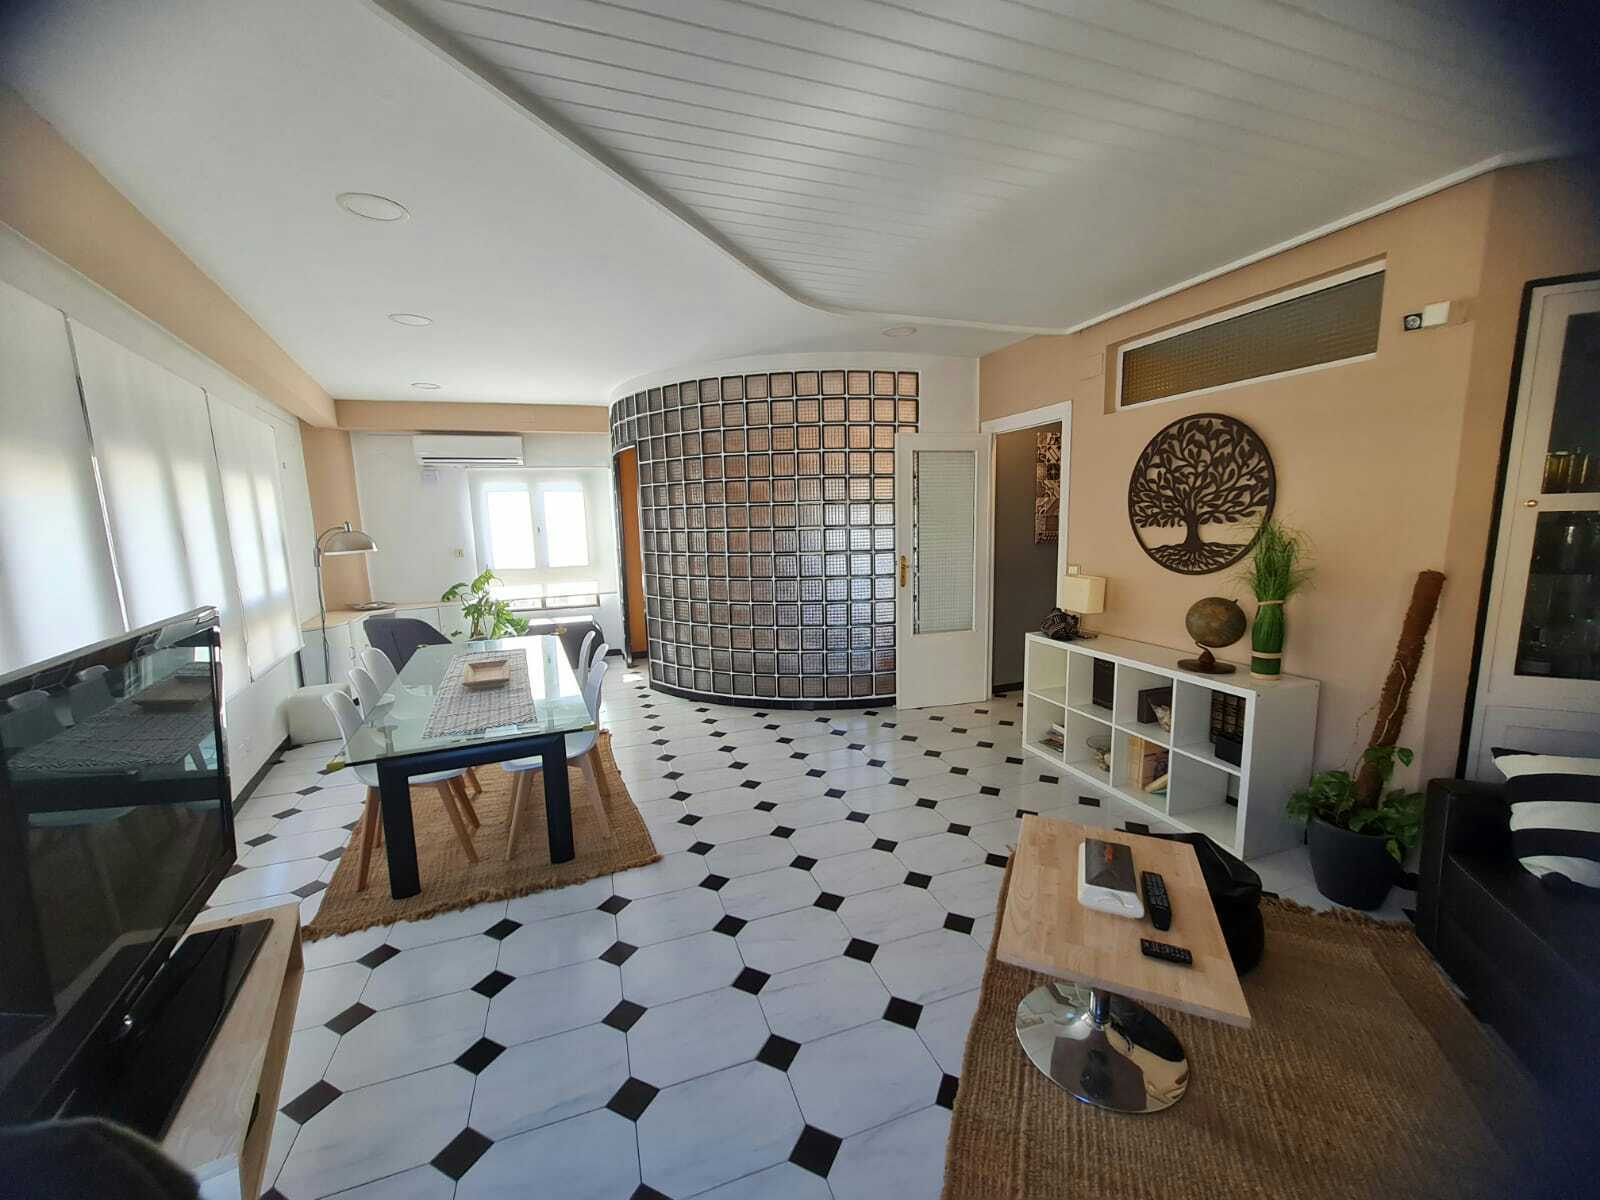 Calabazas - Furnished expat home in Valencia city